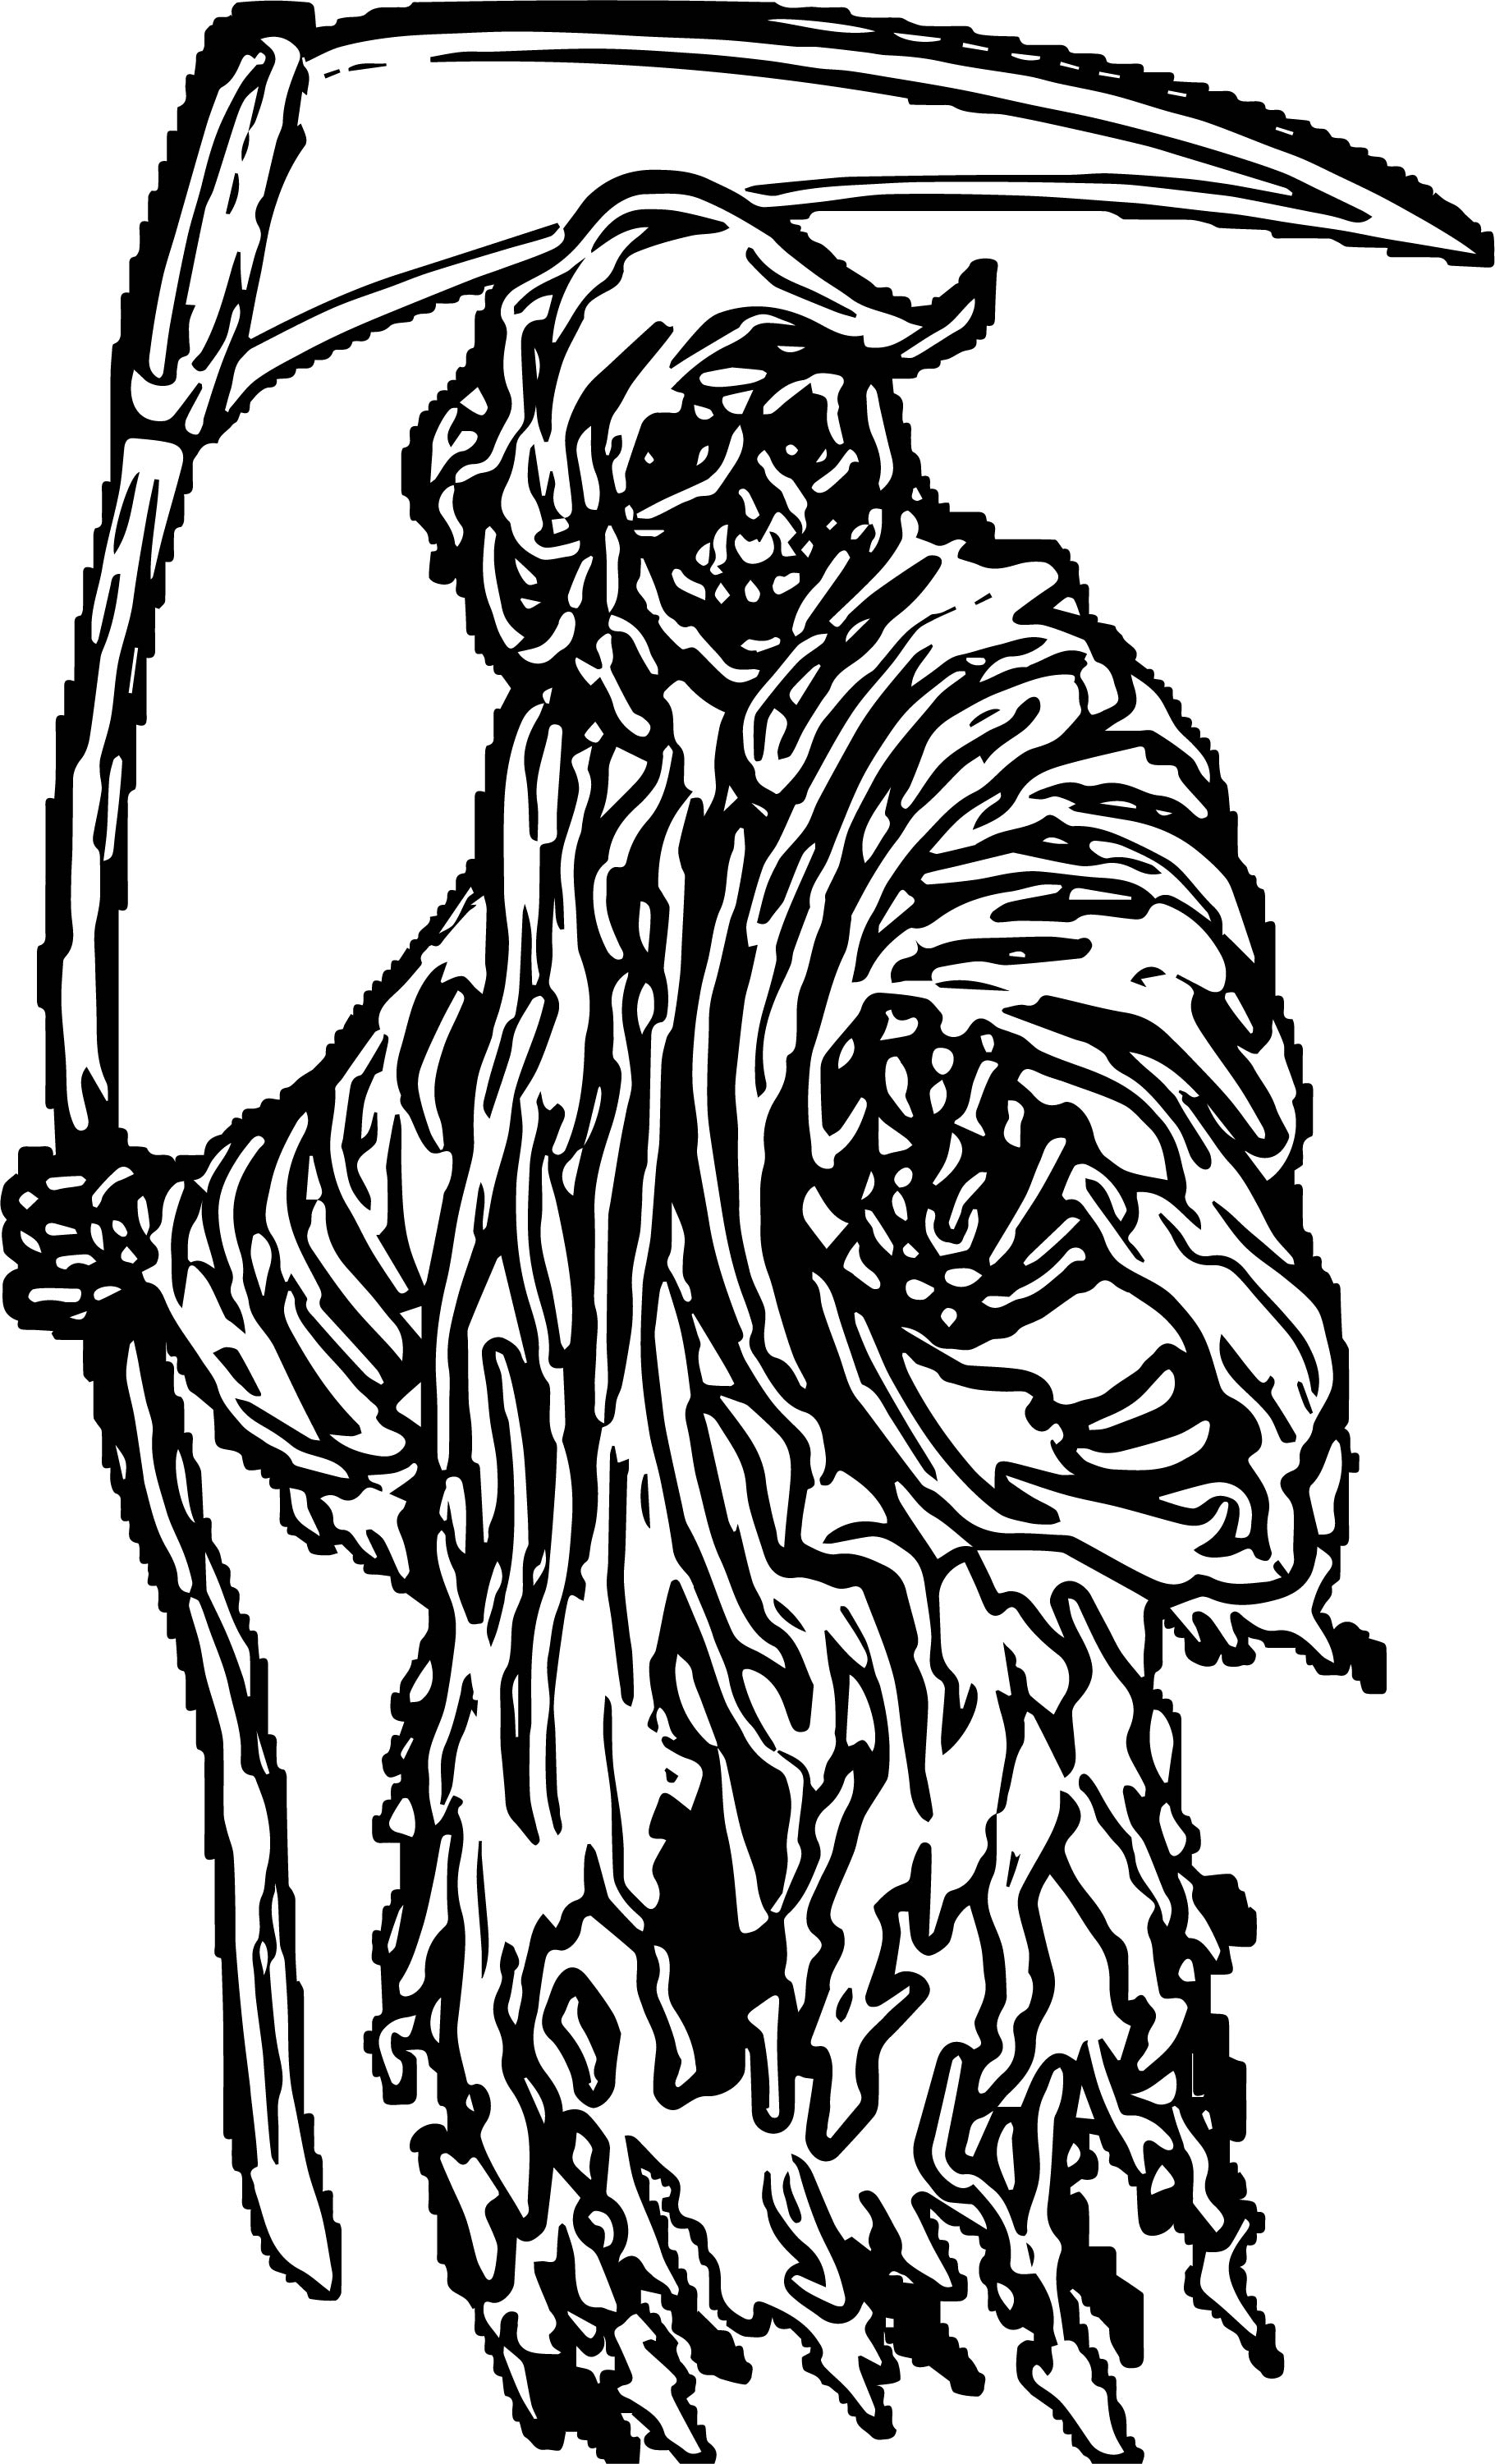 Grim Reaper Halloween Coloring Page